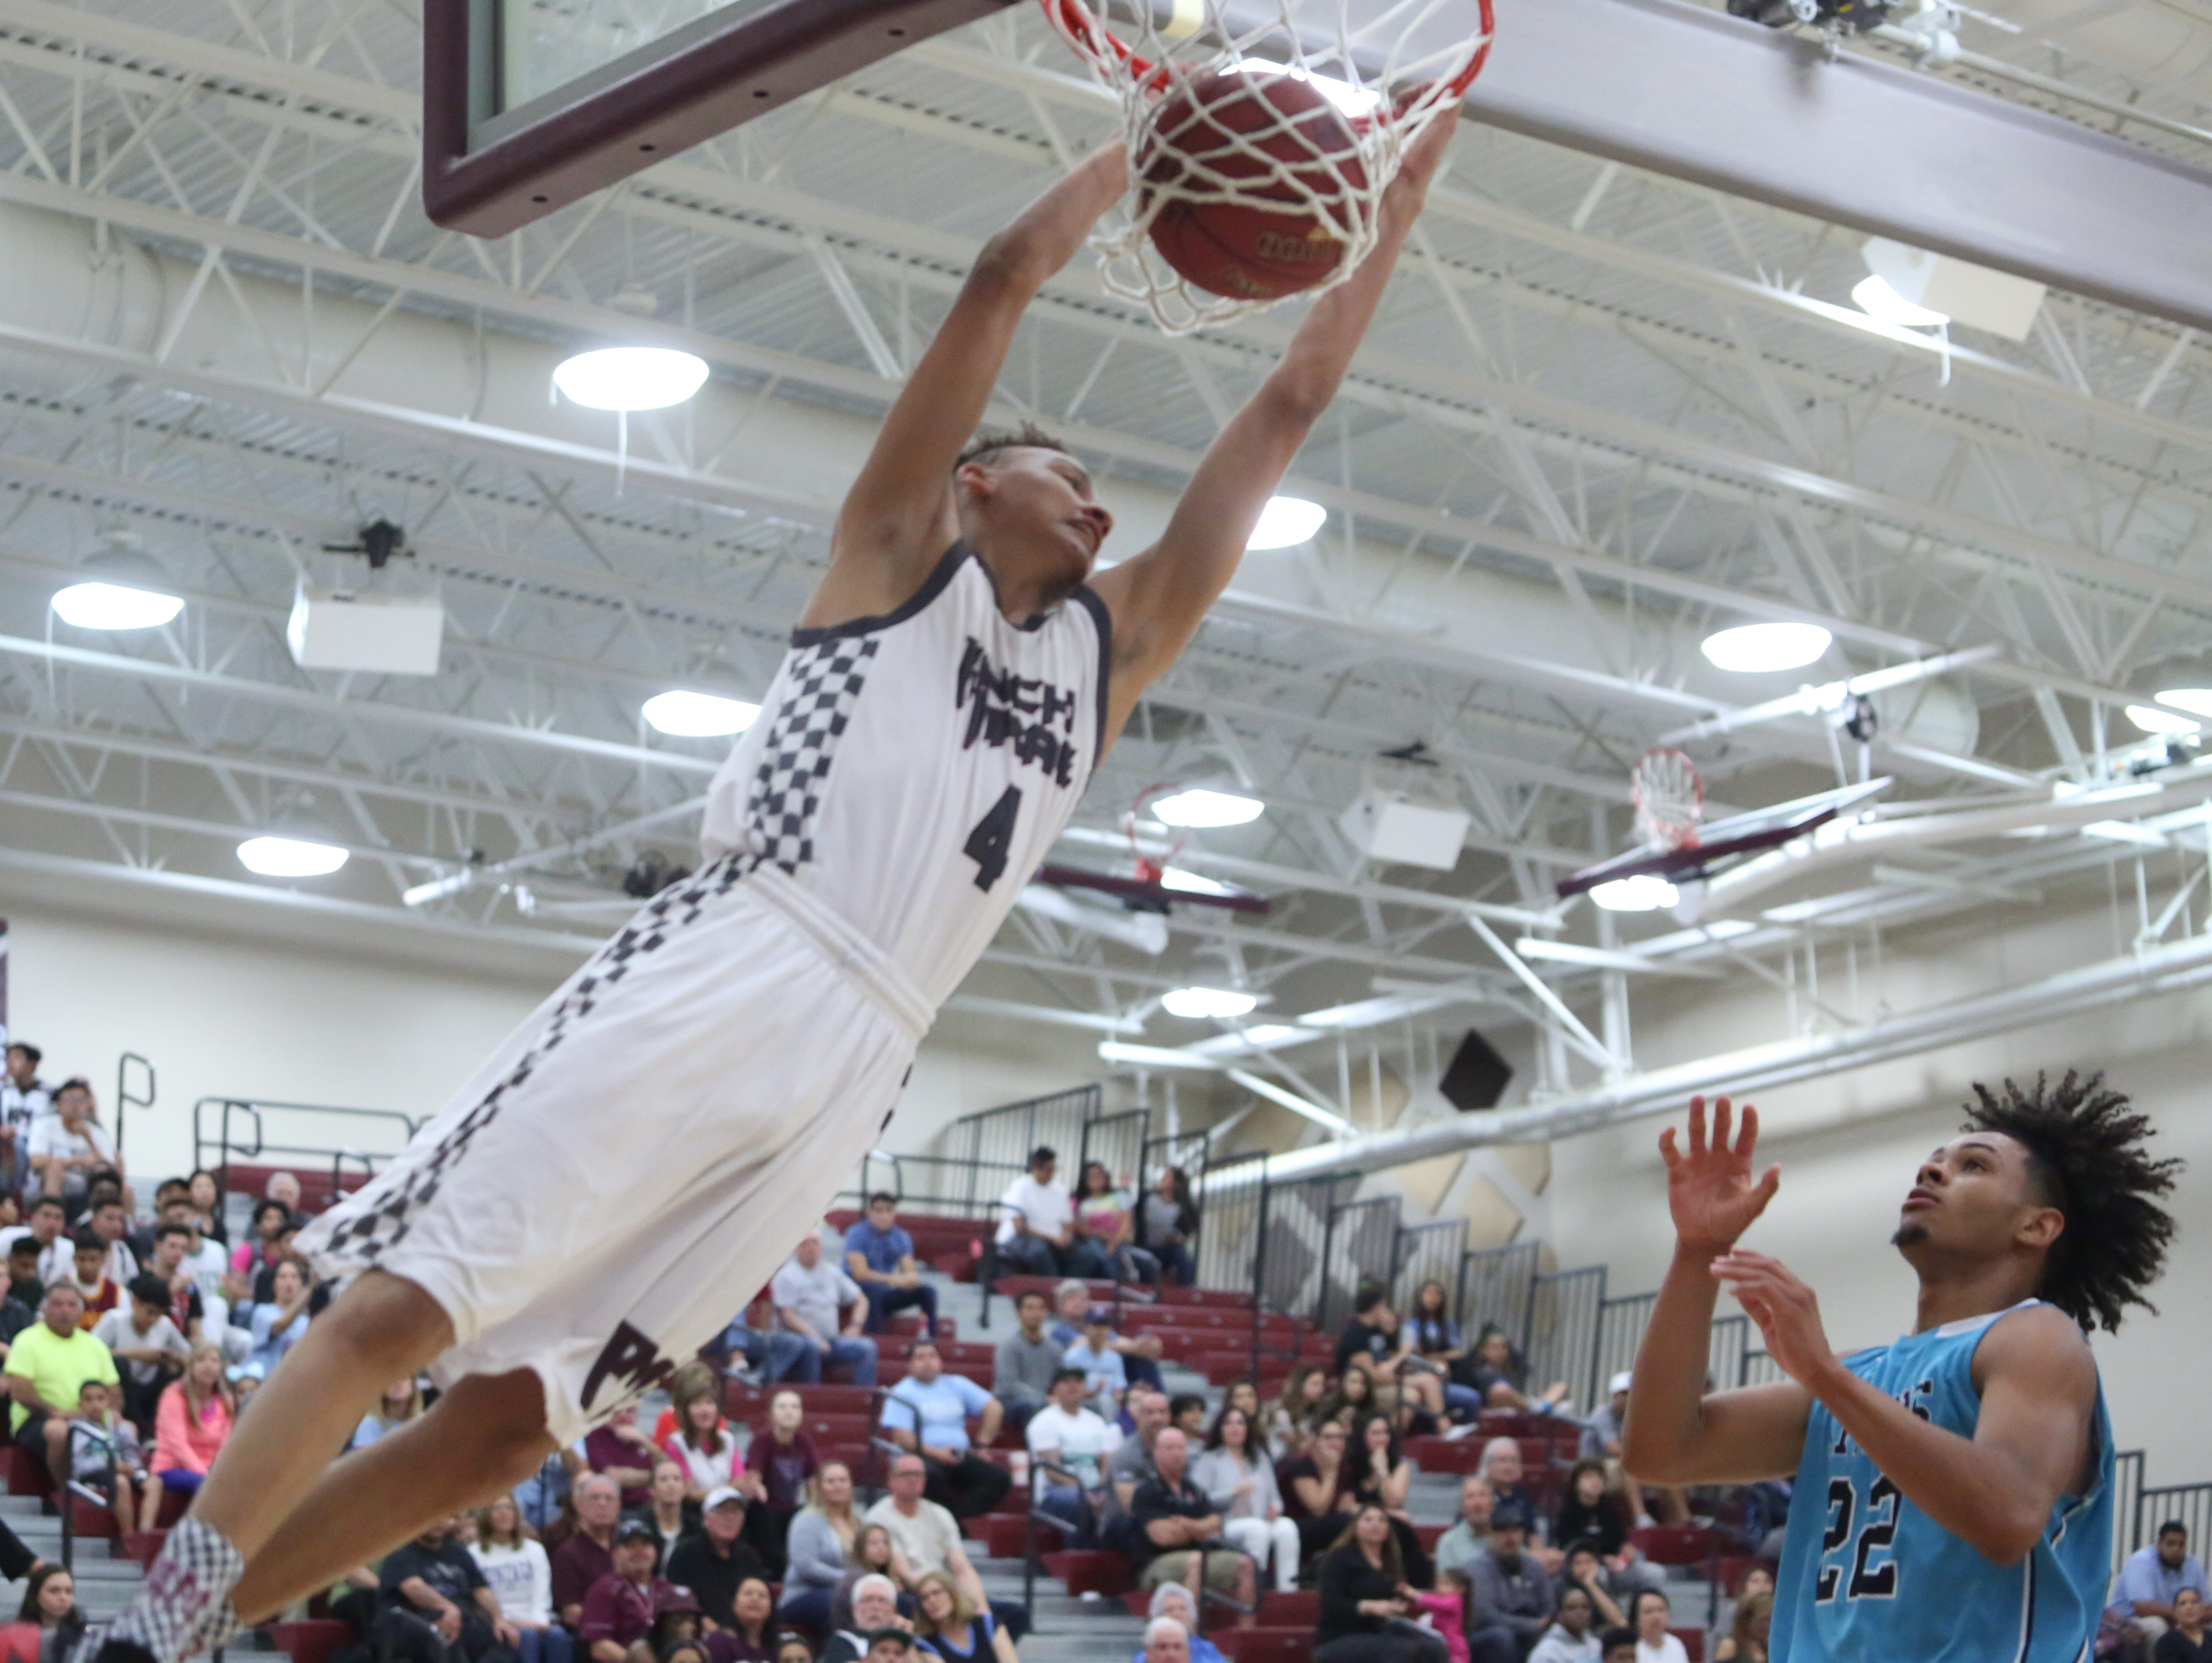 Rancho Mirage High School's Charles Neal dunks the ball during his team's win against Grand Terrace High School at Rancho Mirage on February 15, 2017. Rancho Mirage won the game 96-56.